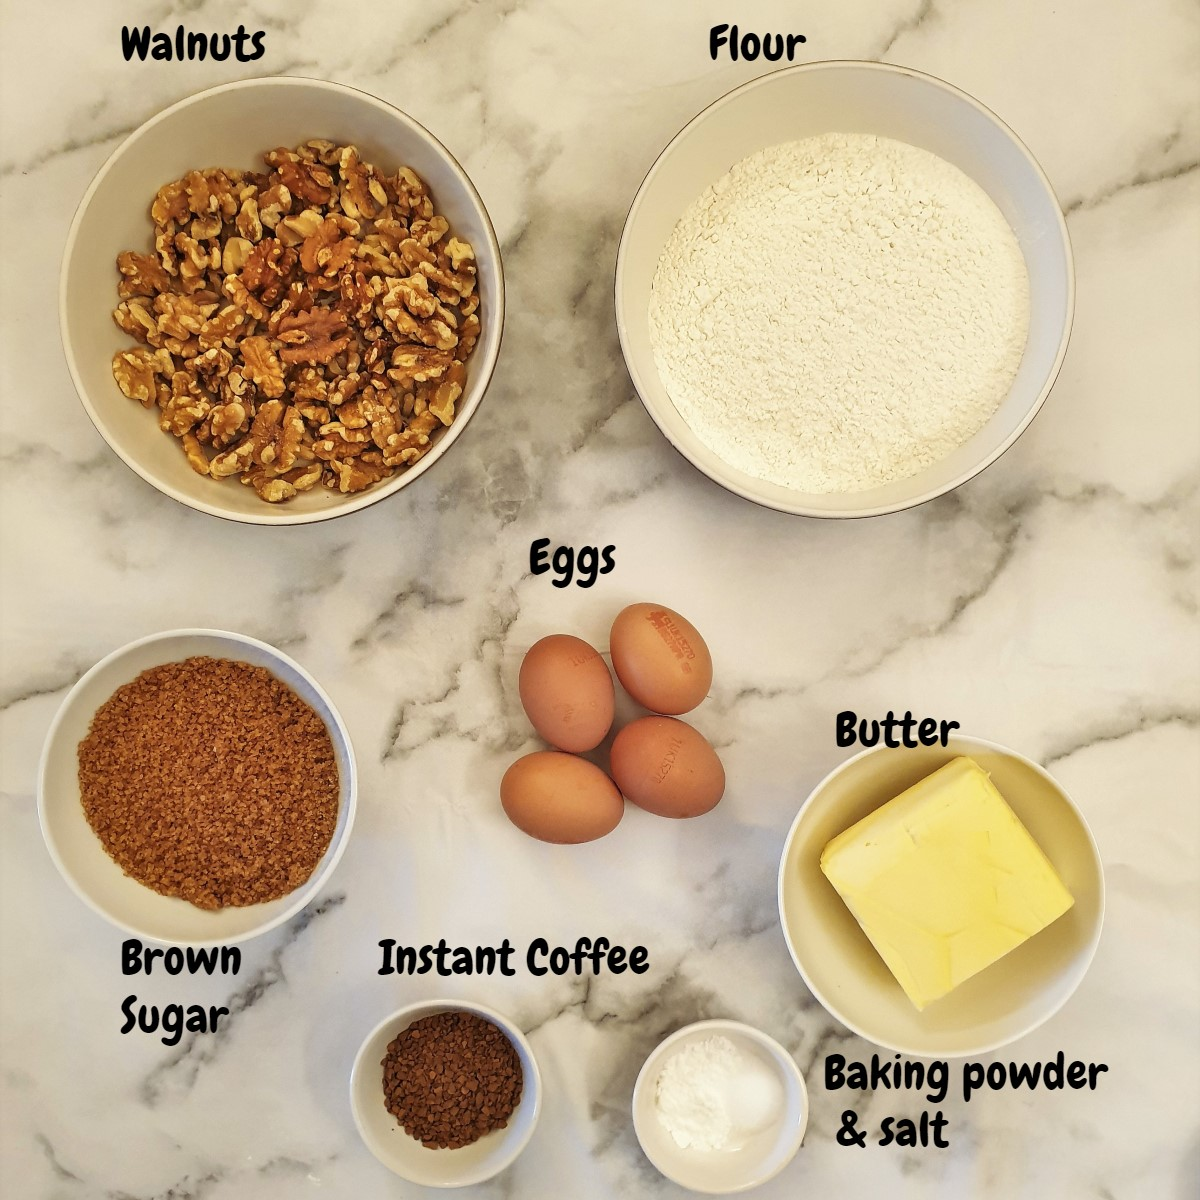 Ingredients for coffee walnut cake.